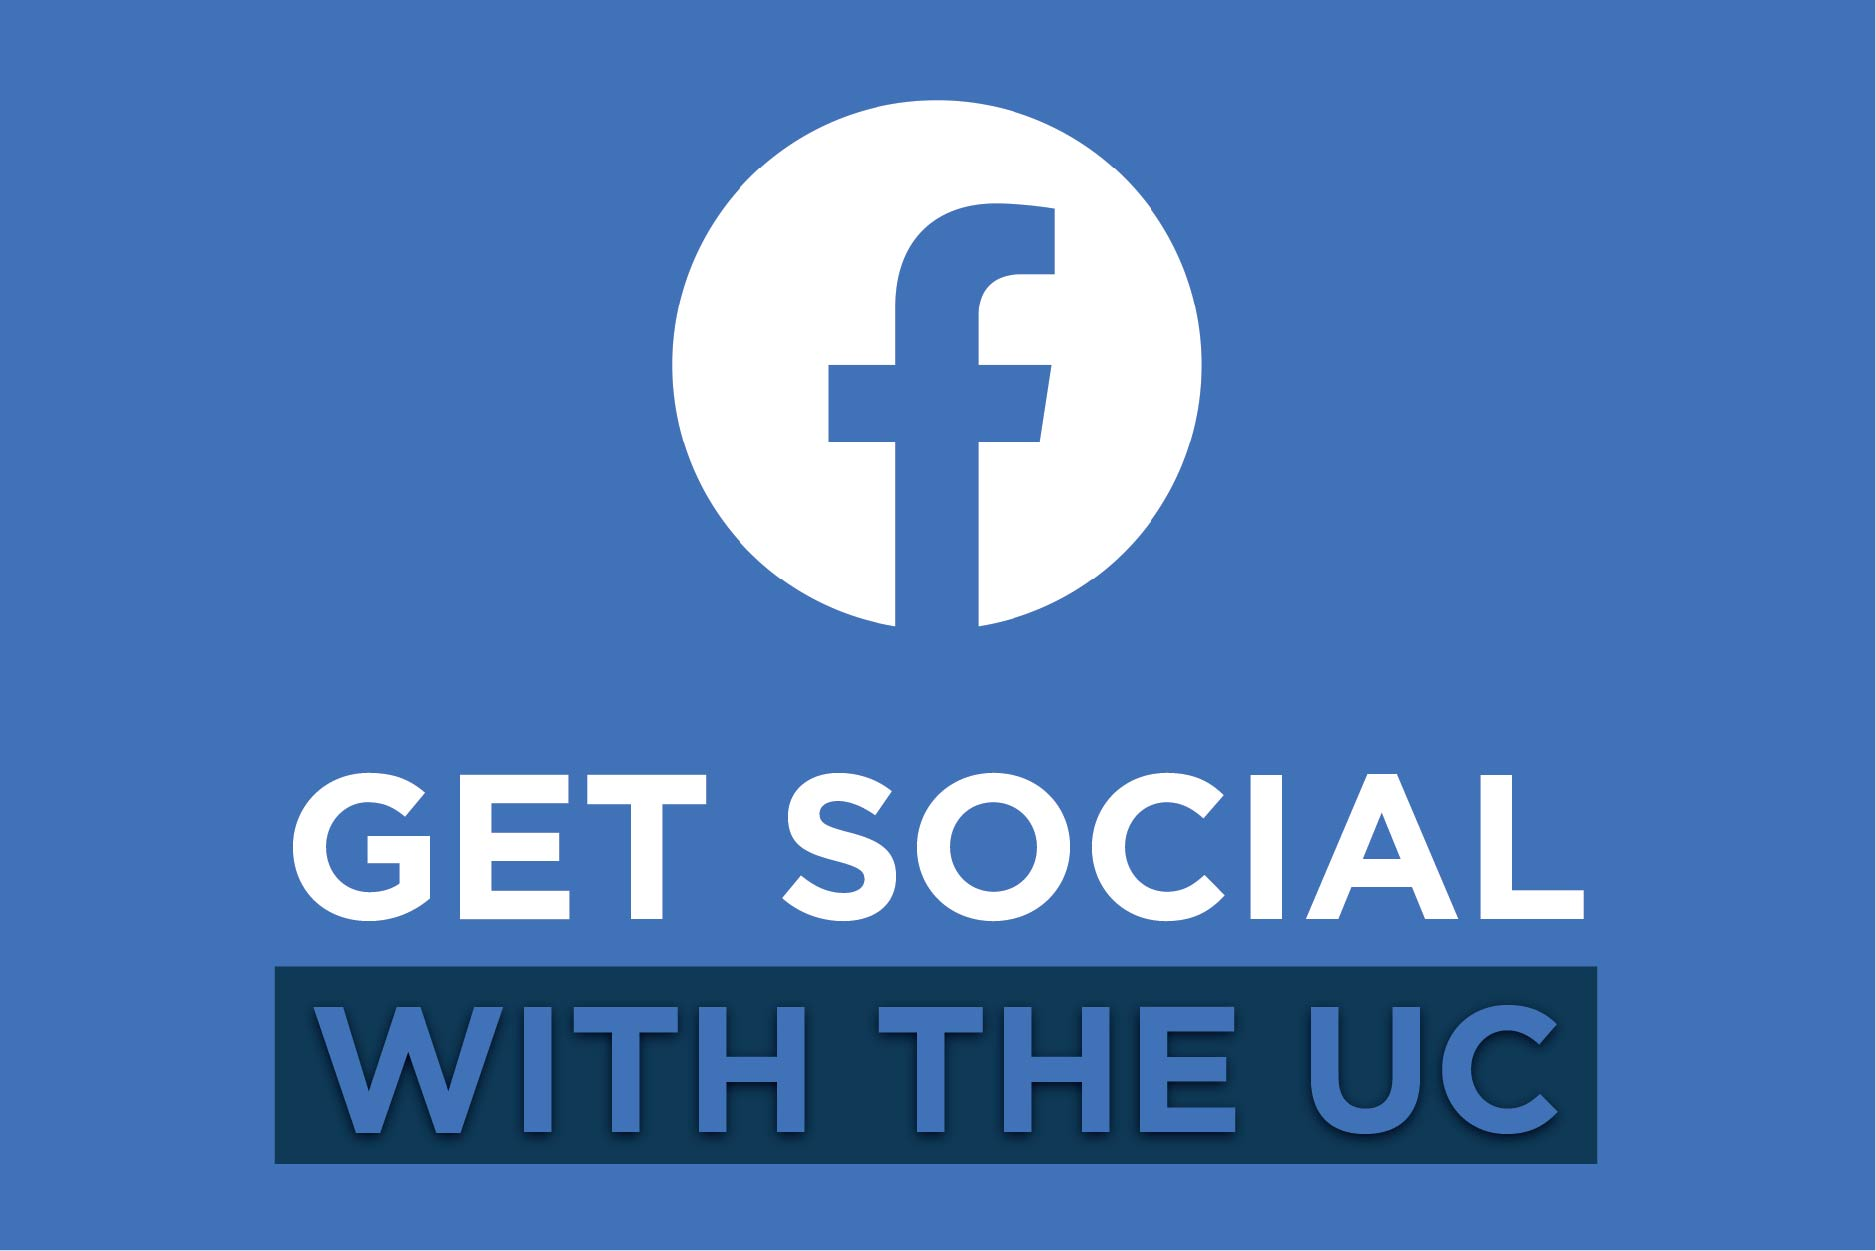 Connect with the UC on FB